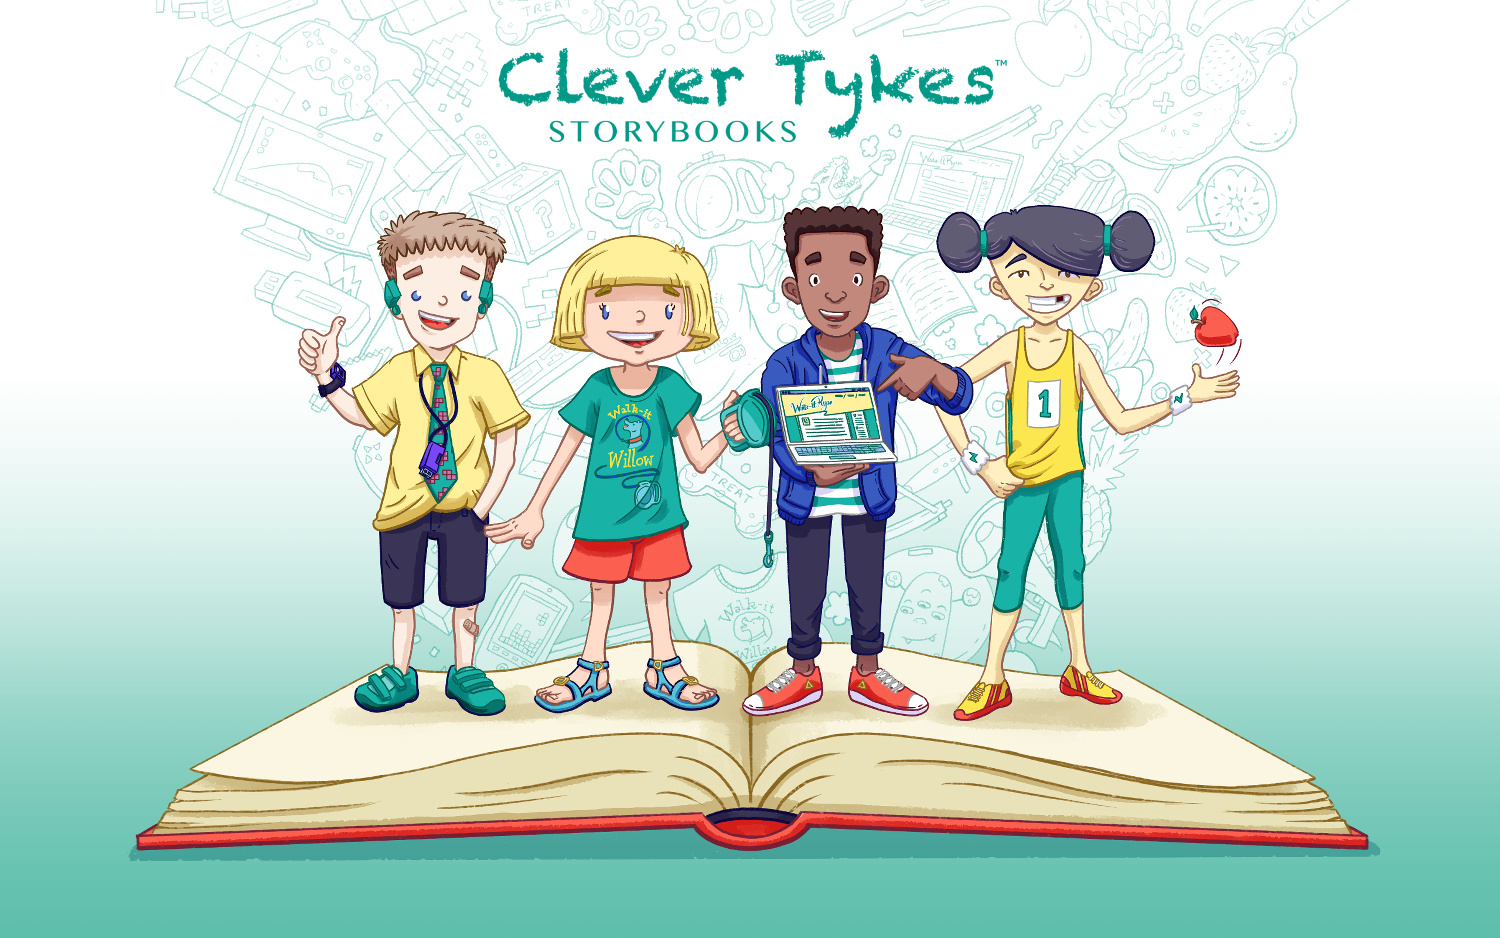 Clever Tykes characters on a book